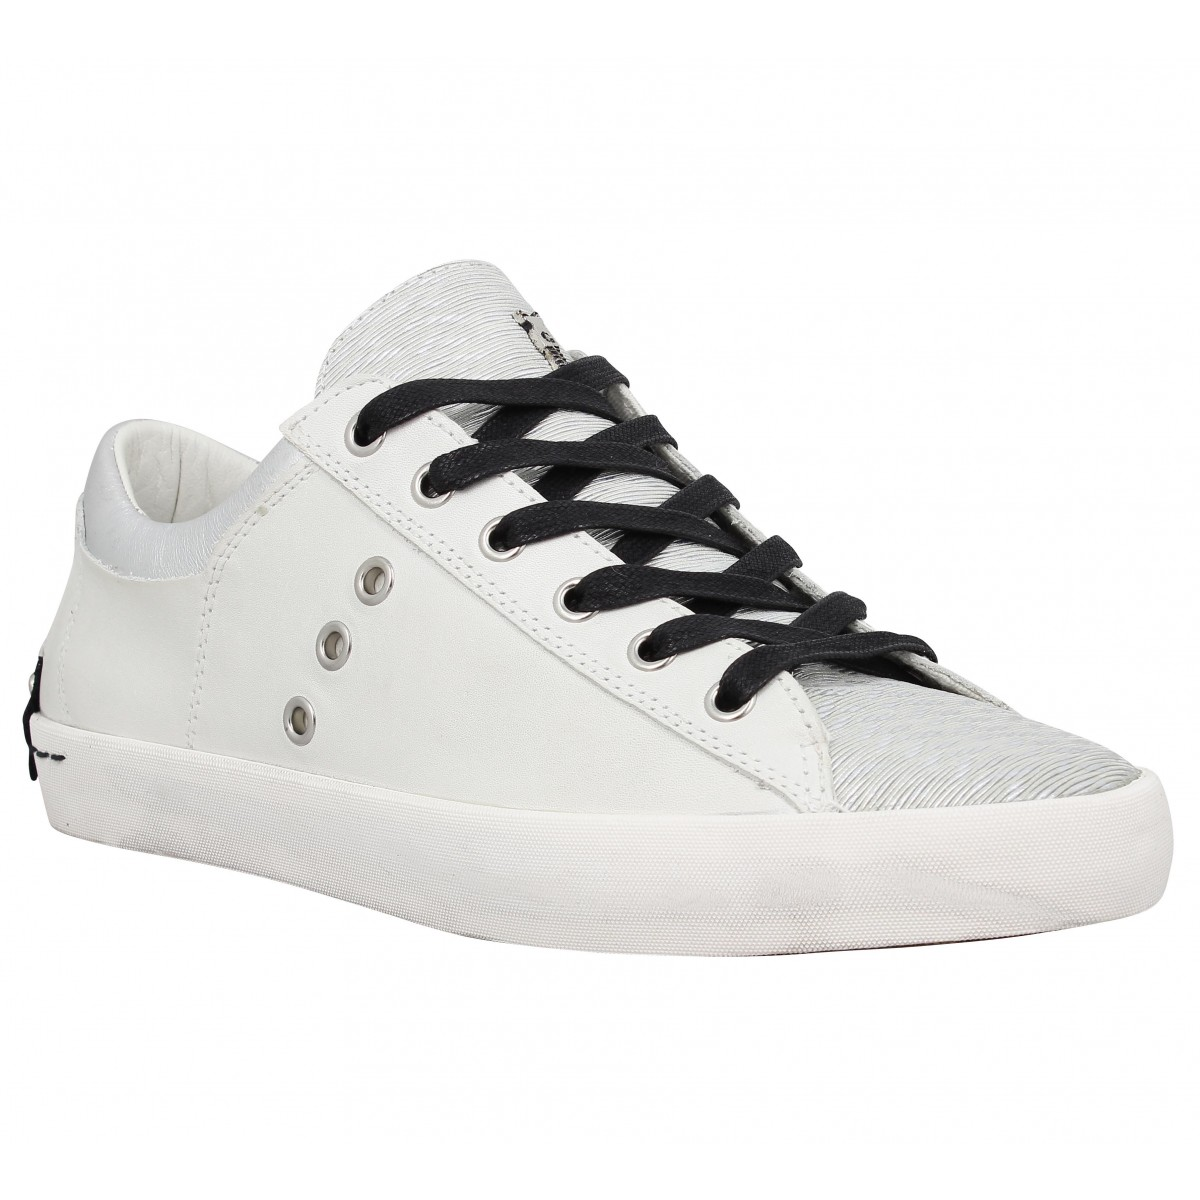 Baskets CRIME 25004 Low Femme Blanc